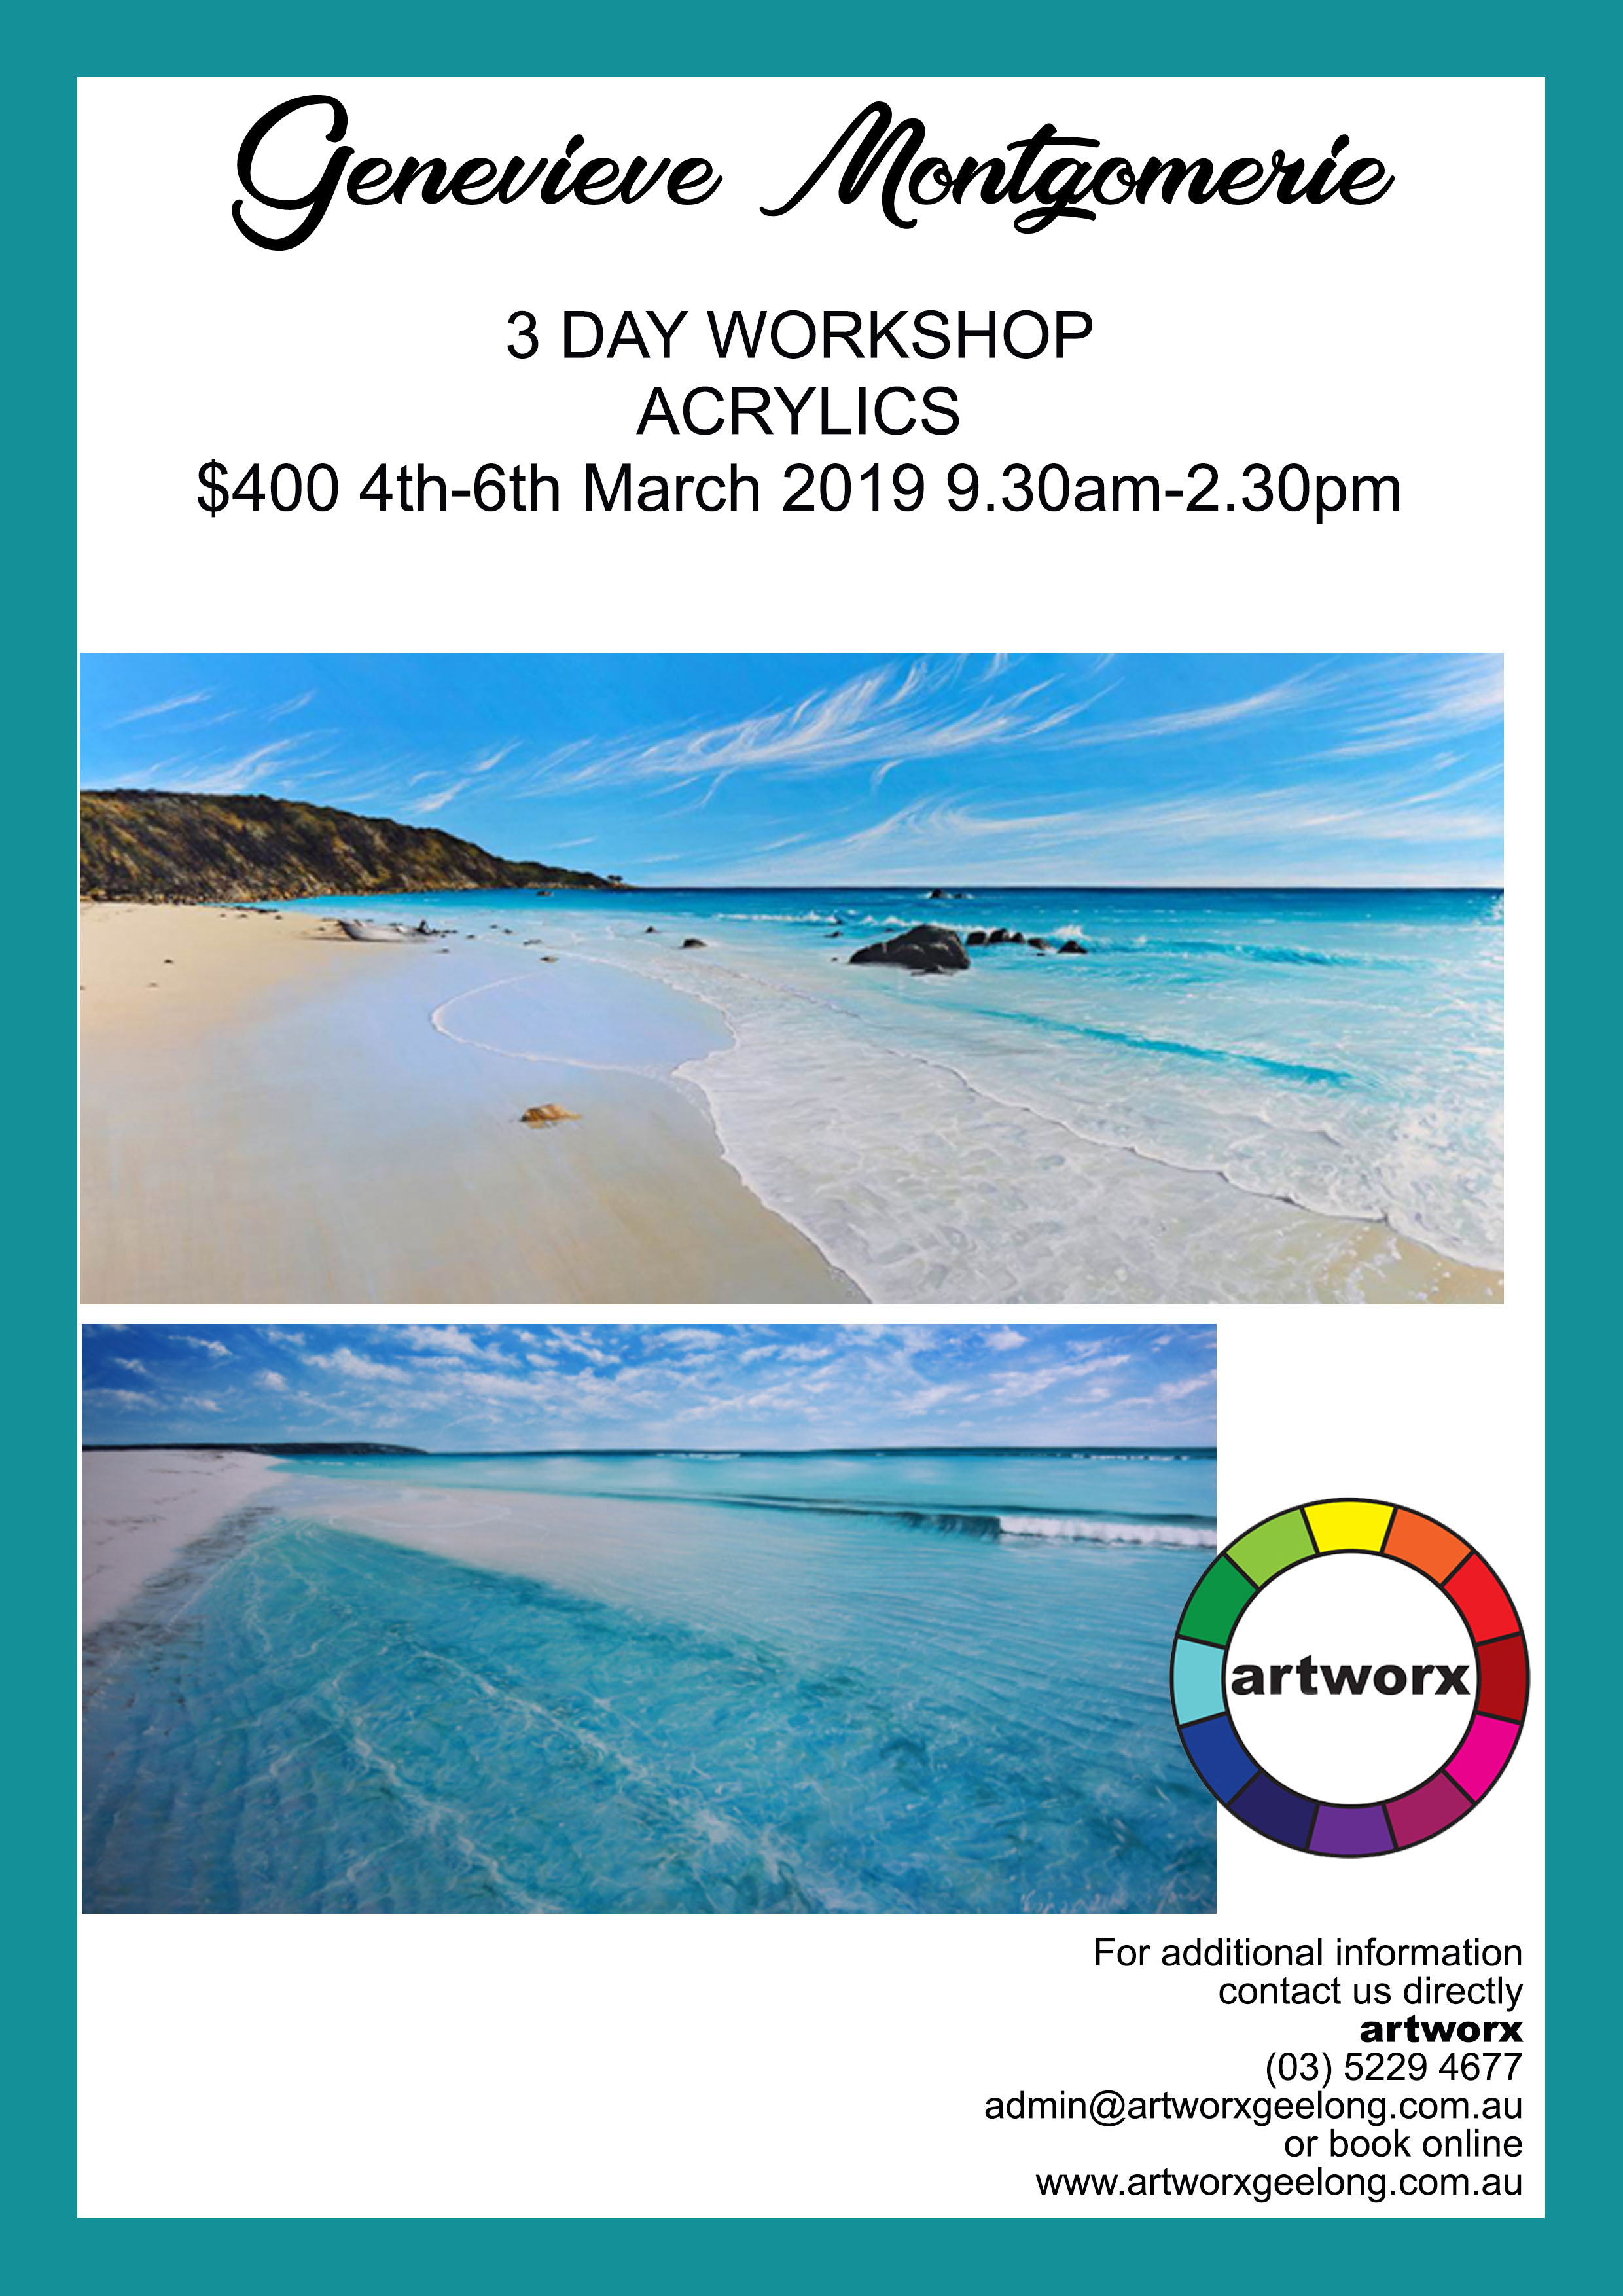 Acrylics - Genevieve Montgomerie 4th-6th March 2019